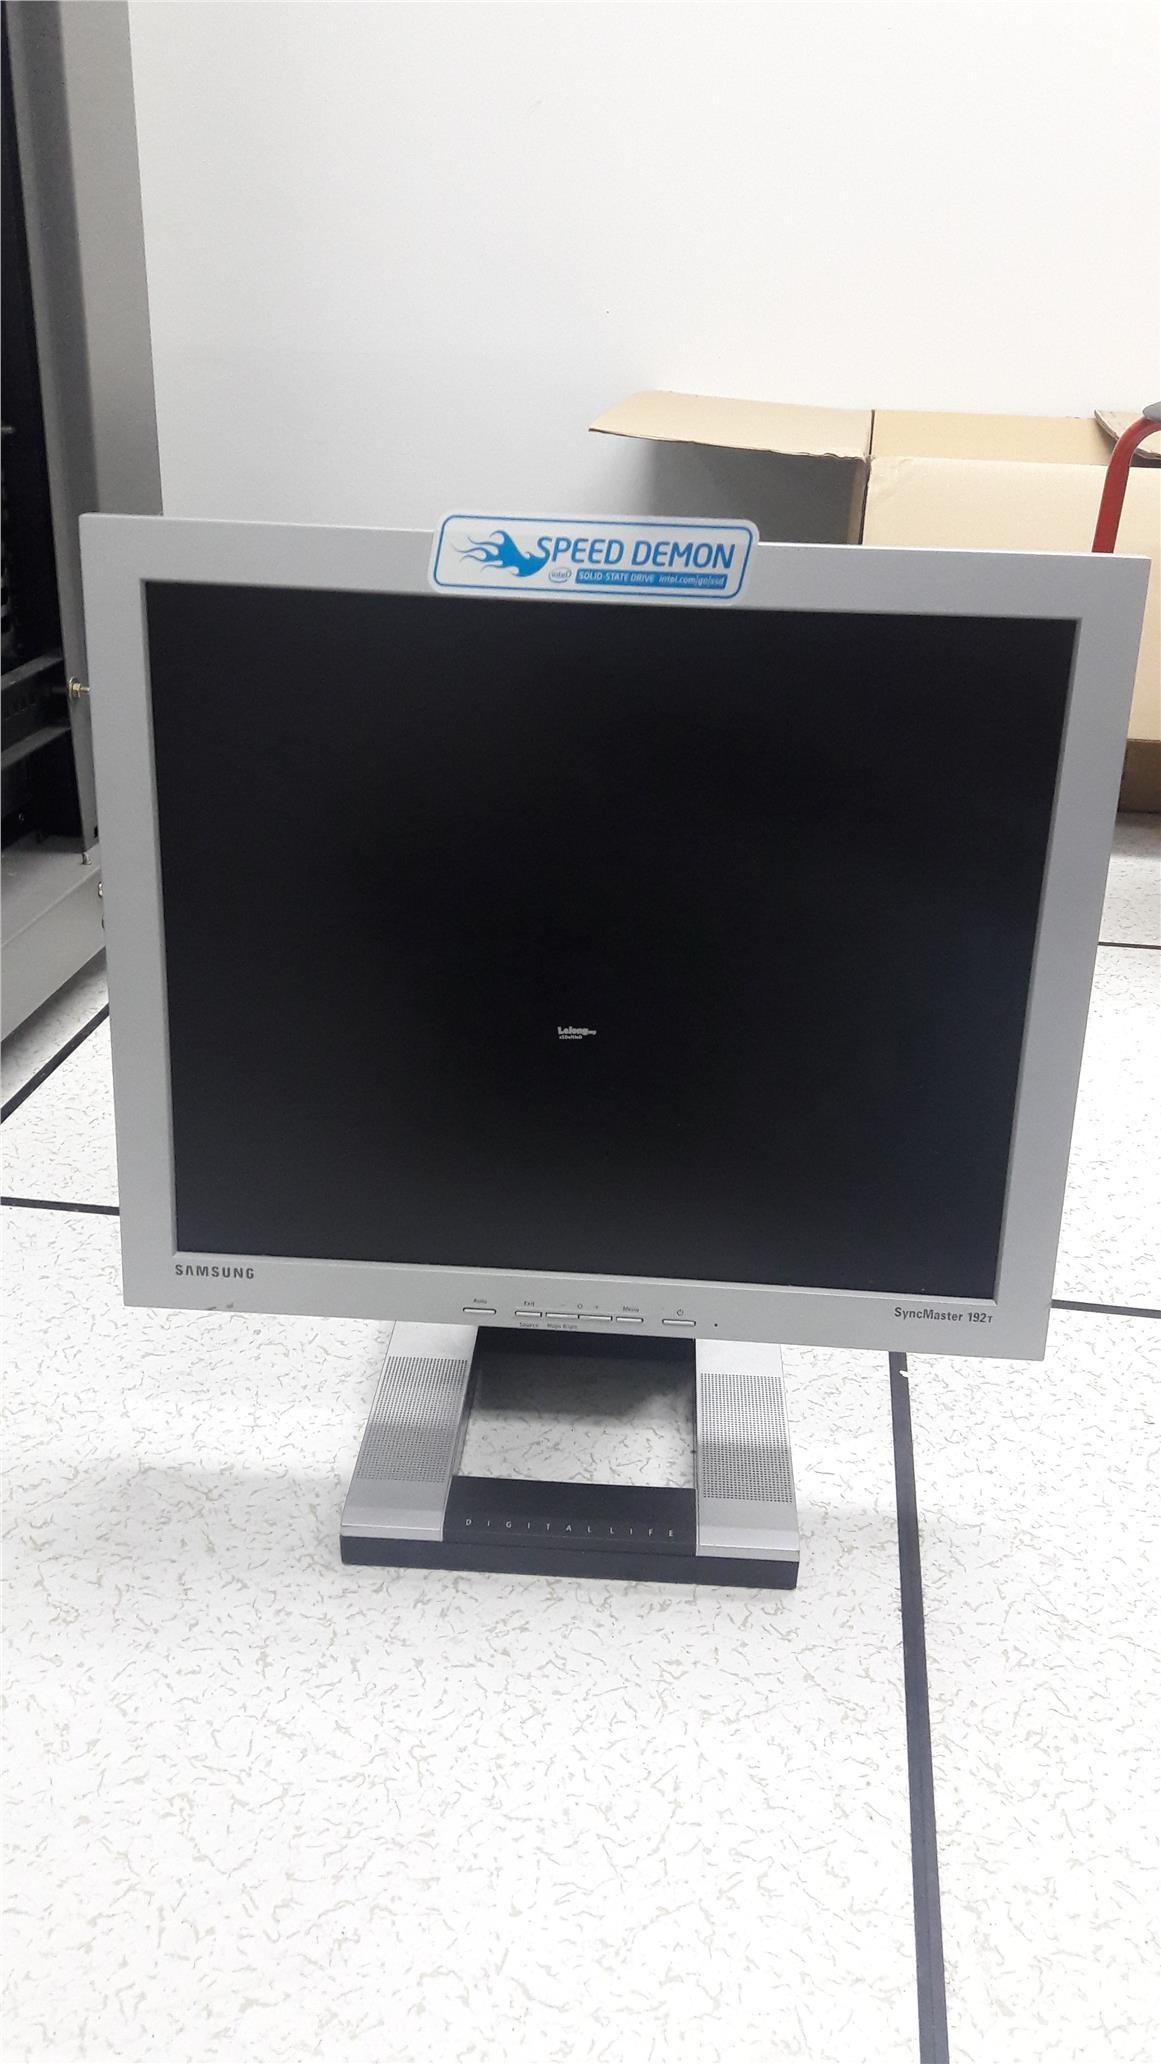 SAMSUNG 19 Inch LCD Monitor End 7 30 2016 21500 PM MYT